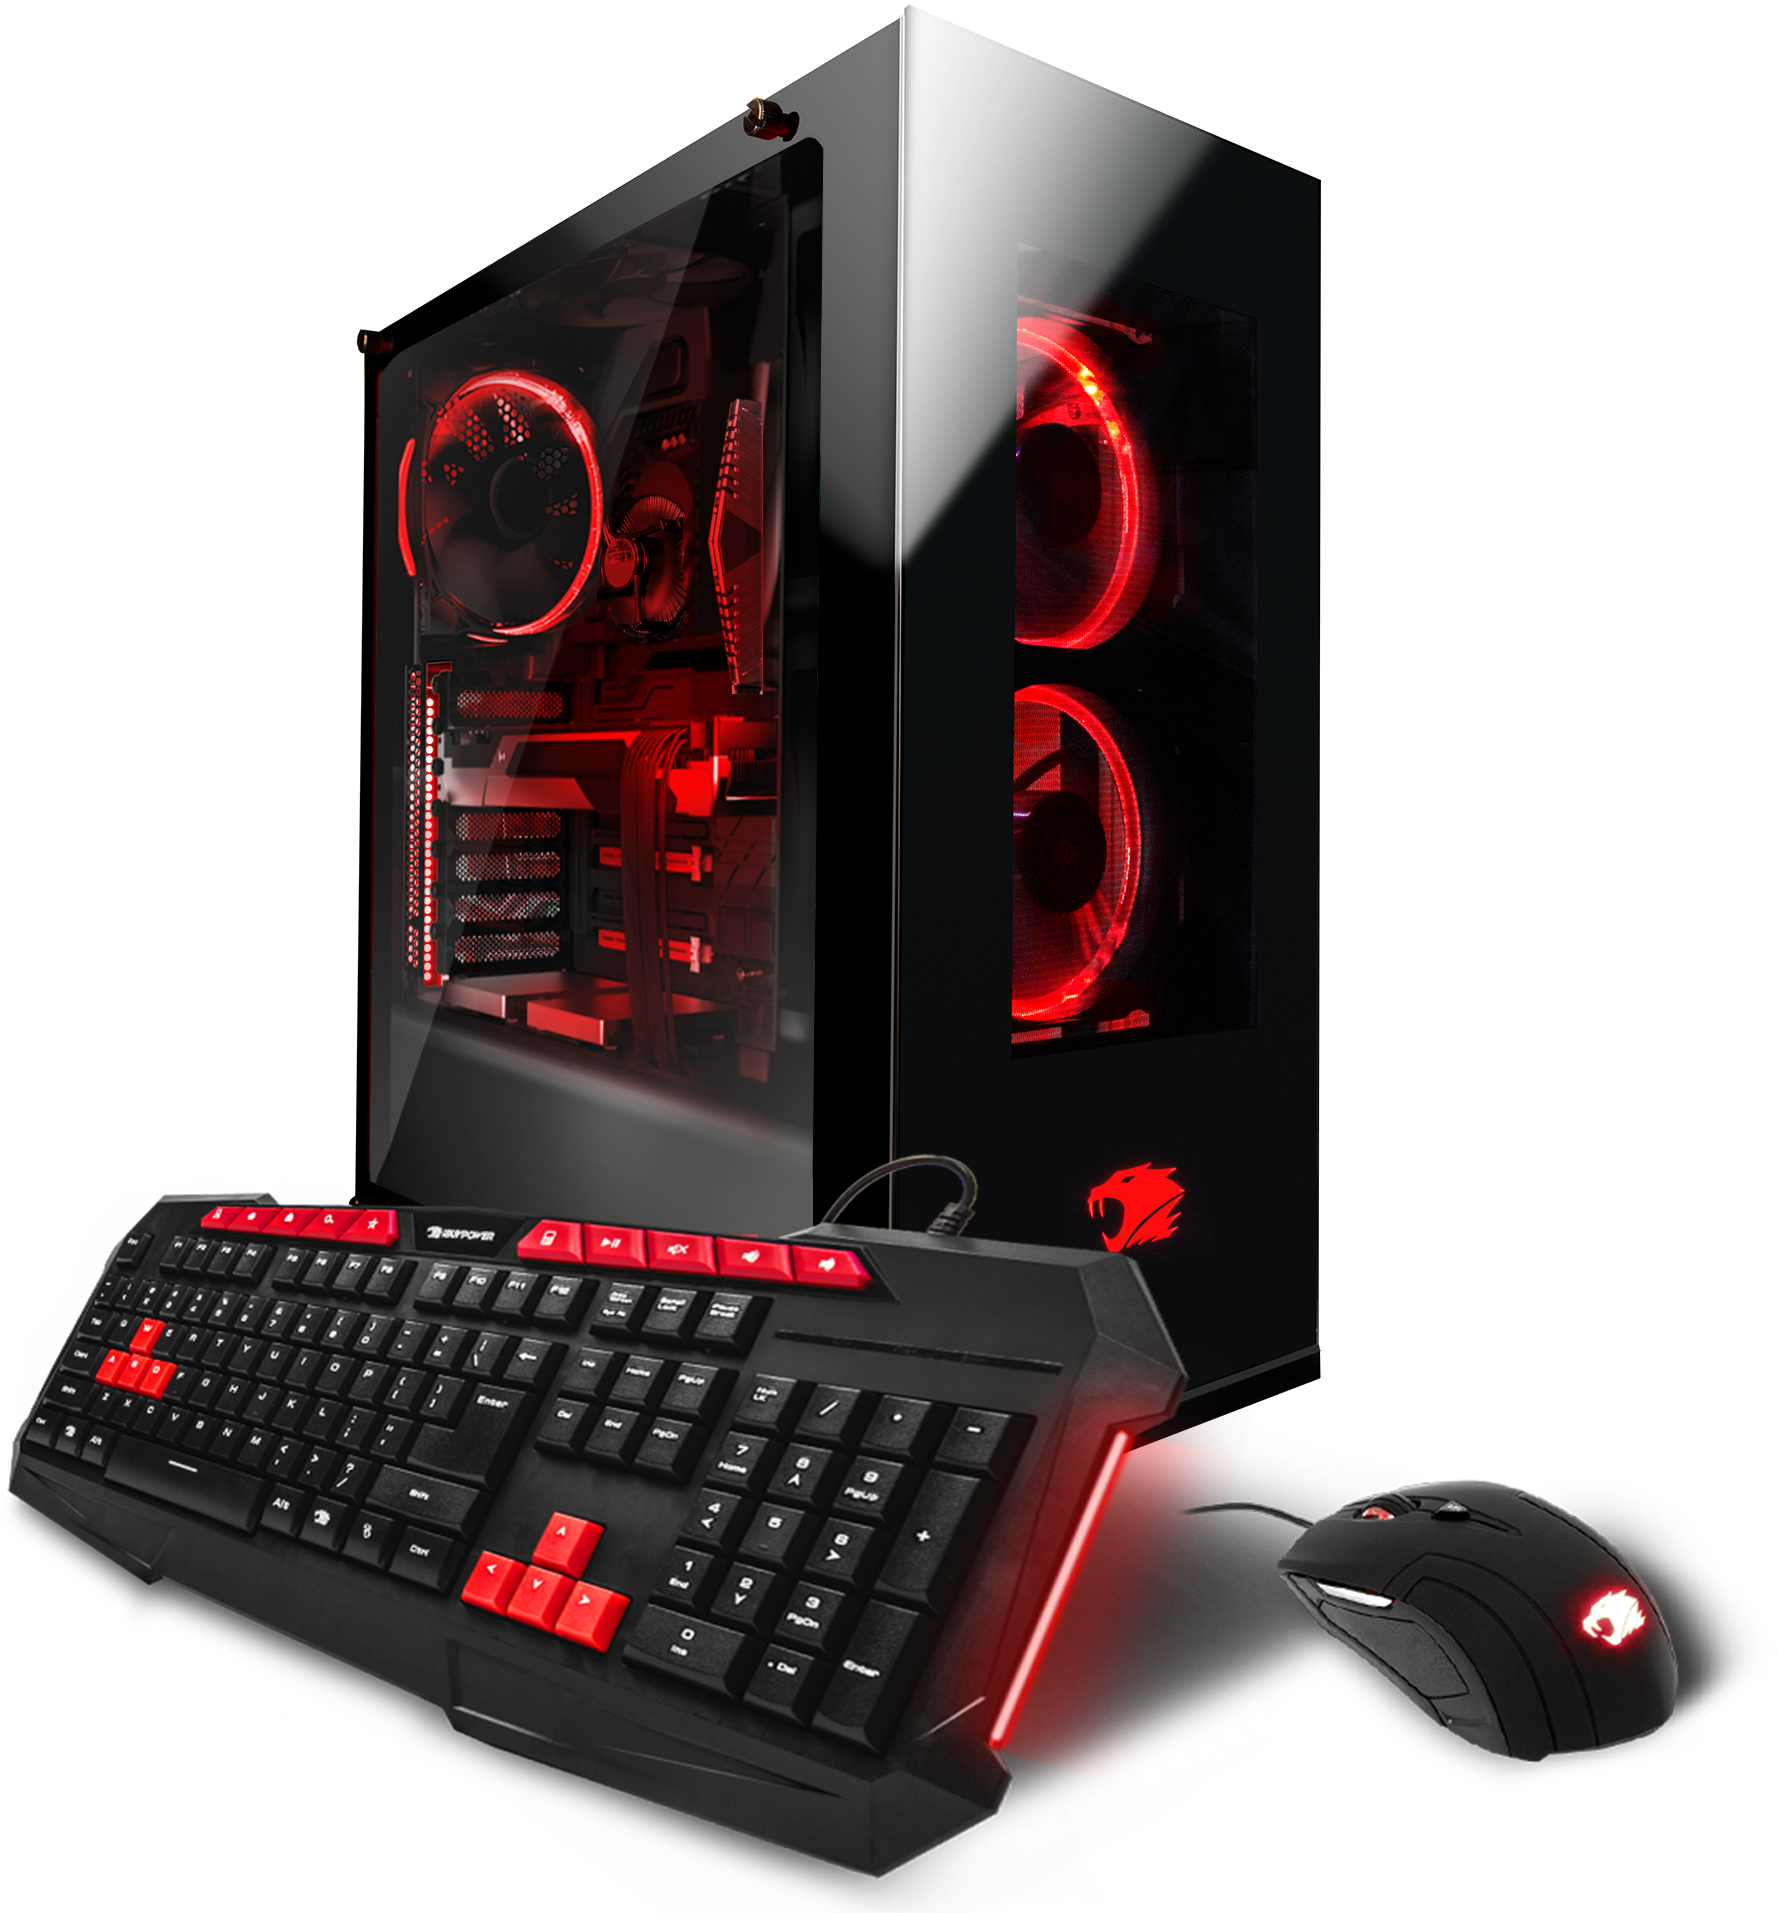 Amazon.com: iBUYPOWER Gaming Computer Desktop PC AM002i